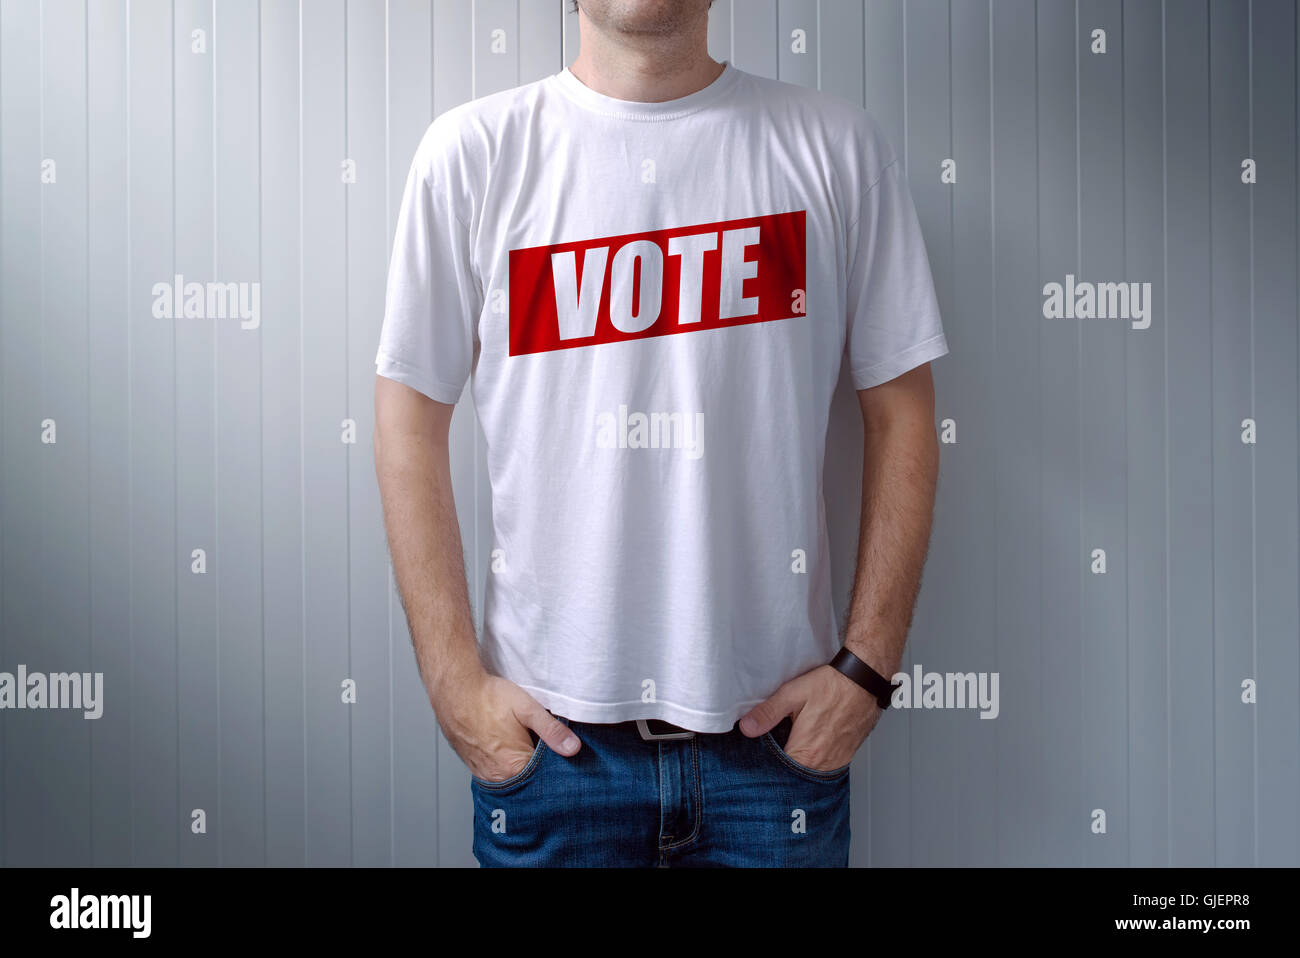 Man wearing t-shirt with Vote label printed on chest, express attitude and opinion on political elections Stock Photo